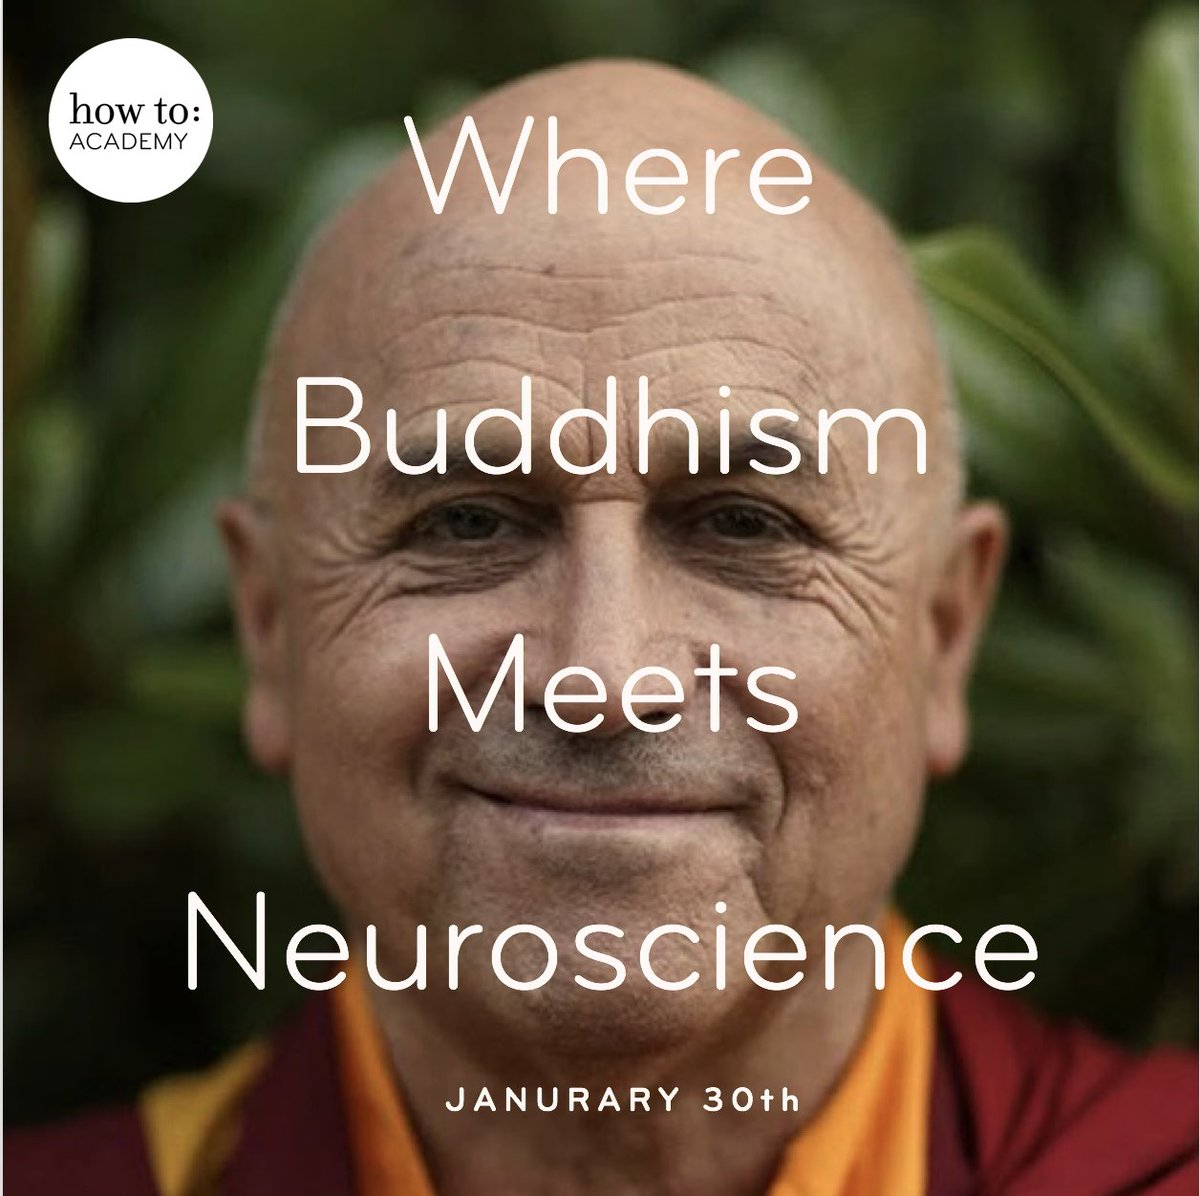 "test Twitter Media - The global #inspiration and #Buddhist monk @matthieu_ricard  joins the neuroscientist Wolf Singer for conversation on 'Where Buddhism Meet Neuroscience"" January 30th @Logan Hall. Read more - https://t.co/k4AeNN72iZ https://t.co/9LVN2DxVVD"